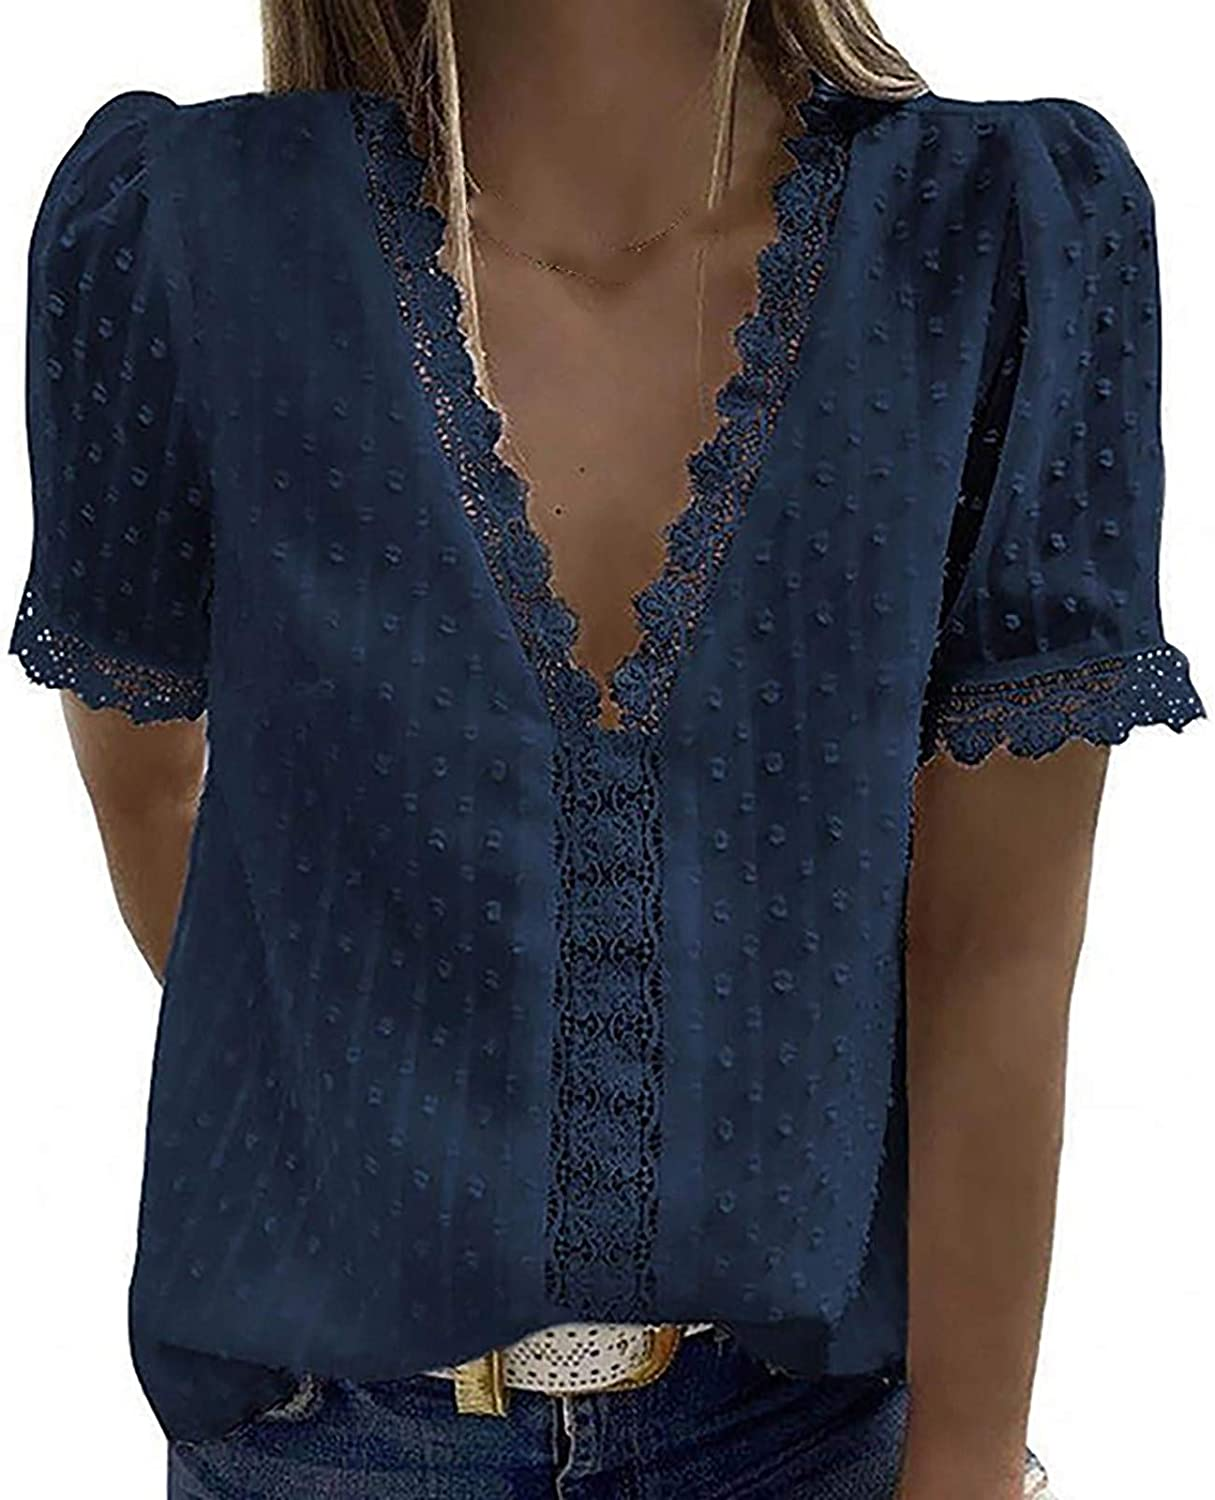 Eduavar Summer Tops for Women Fashion Vintage Lace V Neck Short Sleeve T Shirt Casual Loose Solid Color Blouse Tunic Top